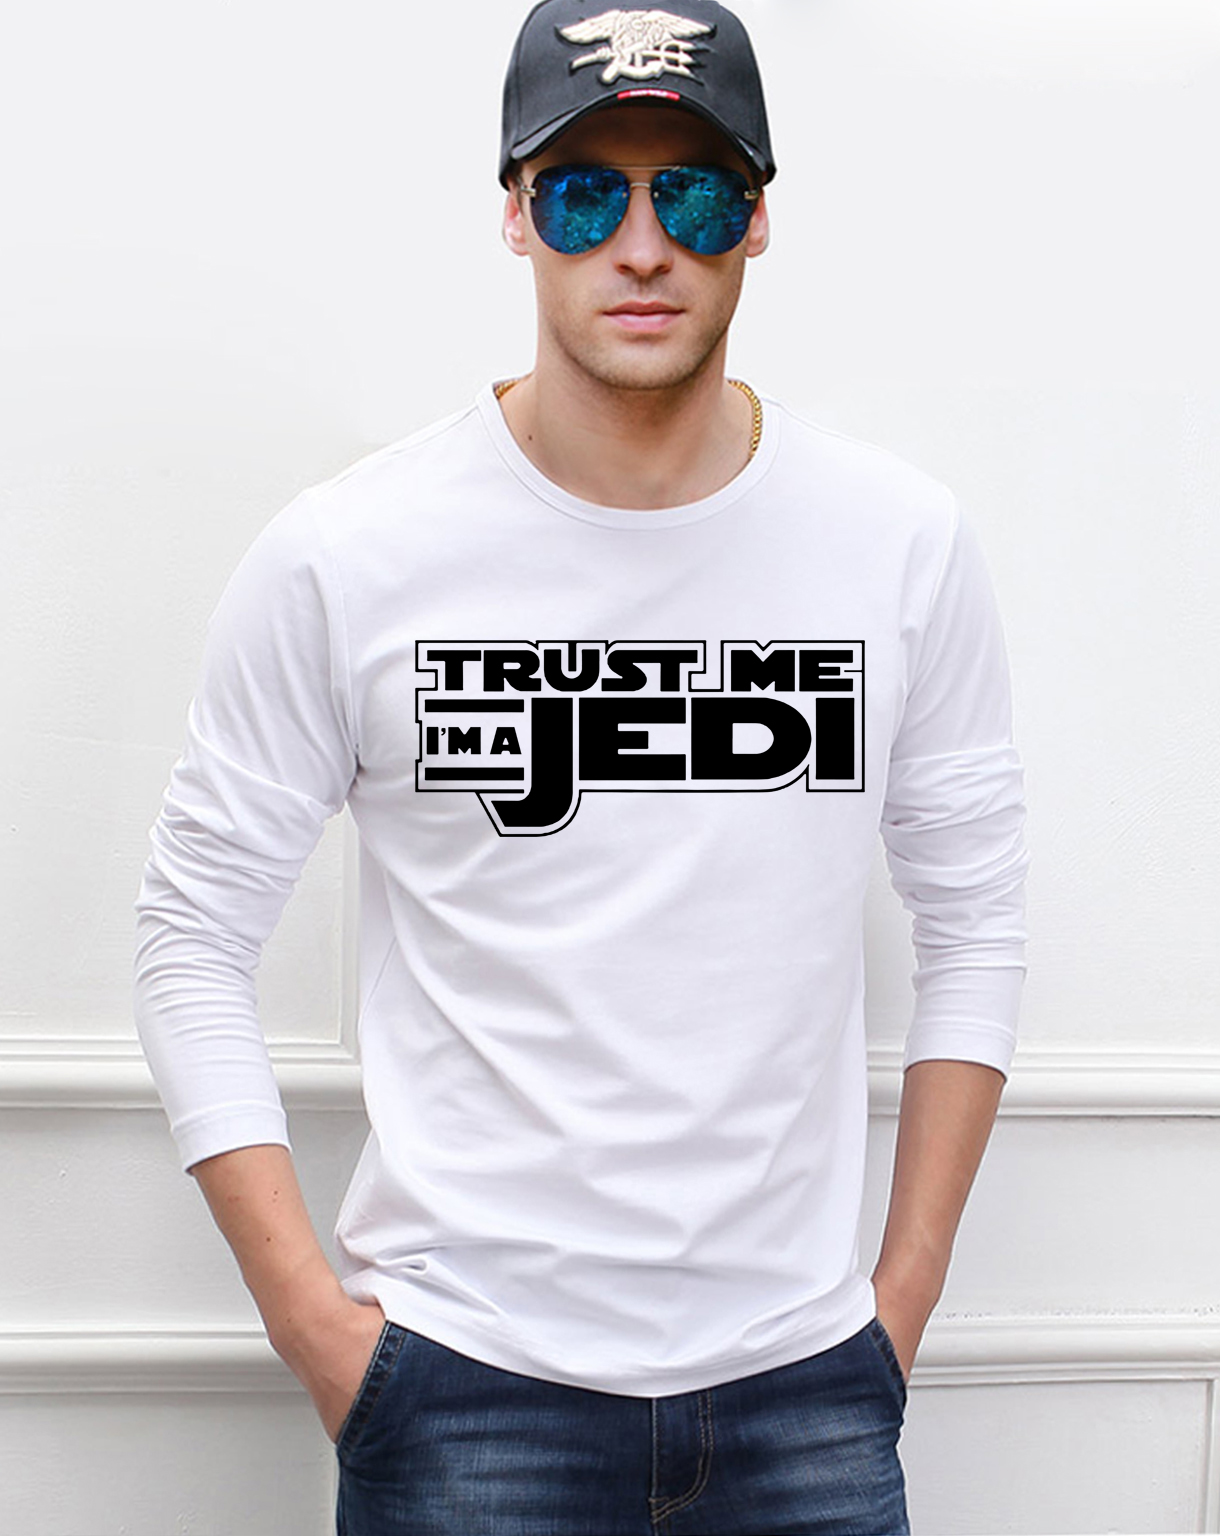 Funny STAR WARS Trust Me I'm a Jedi knight men long sleeve t-shirt 2019 new spring 100% cotton high quality hip hop top tees